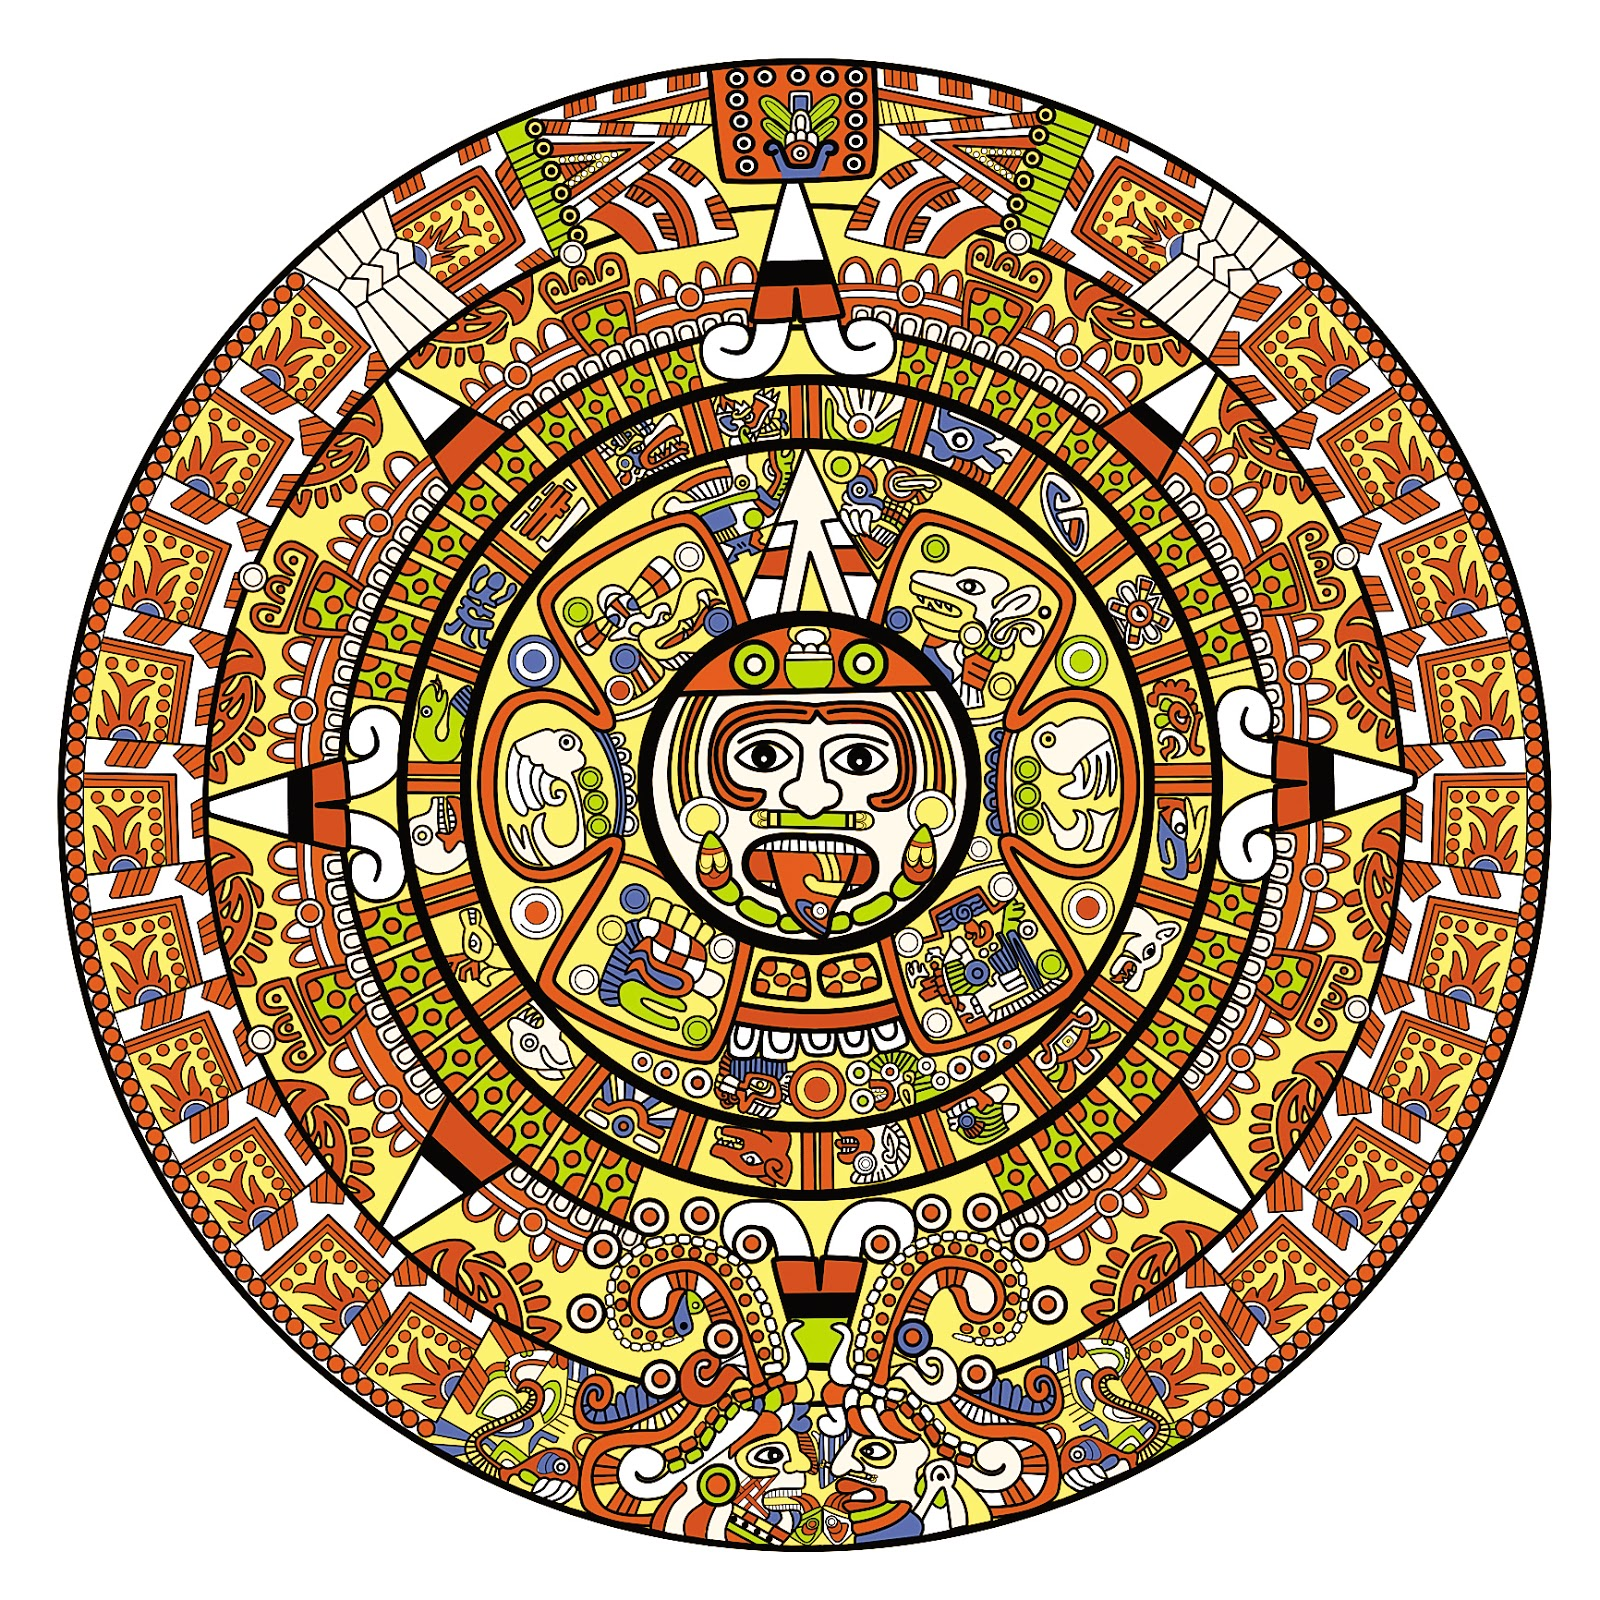 Aztec Calendar Drawings - ClipArt Best